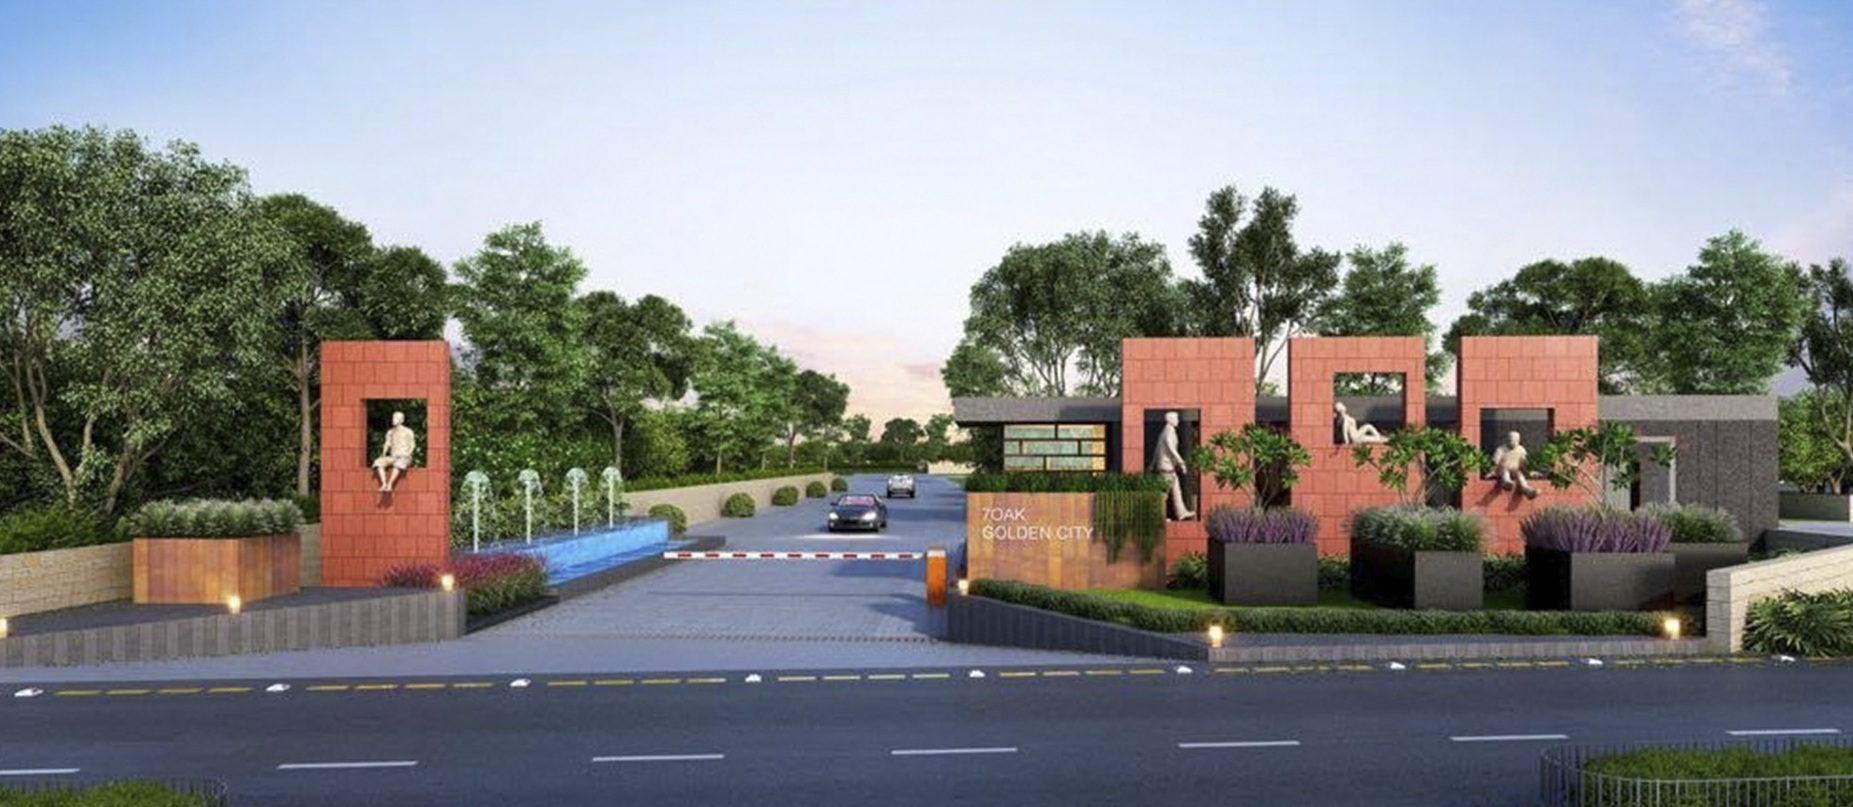 Dholera SIR residential area